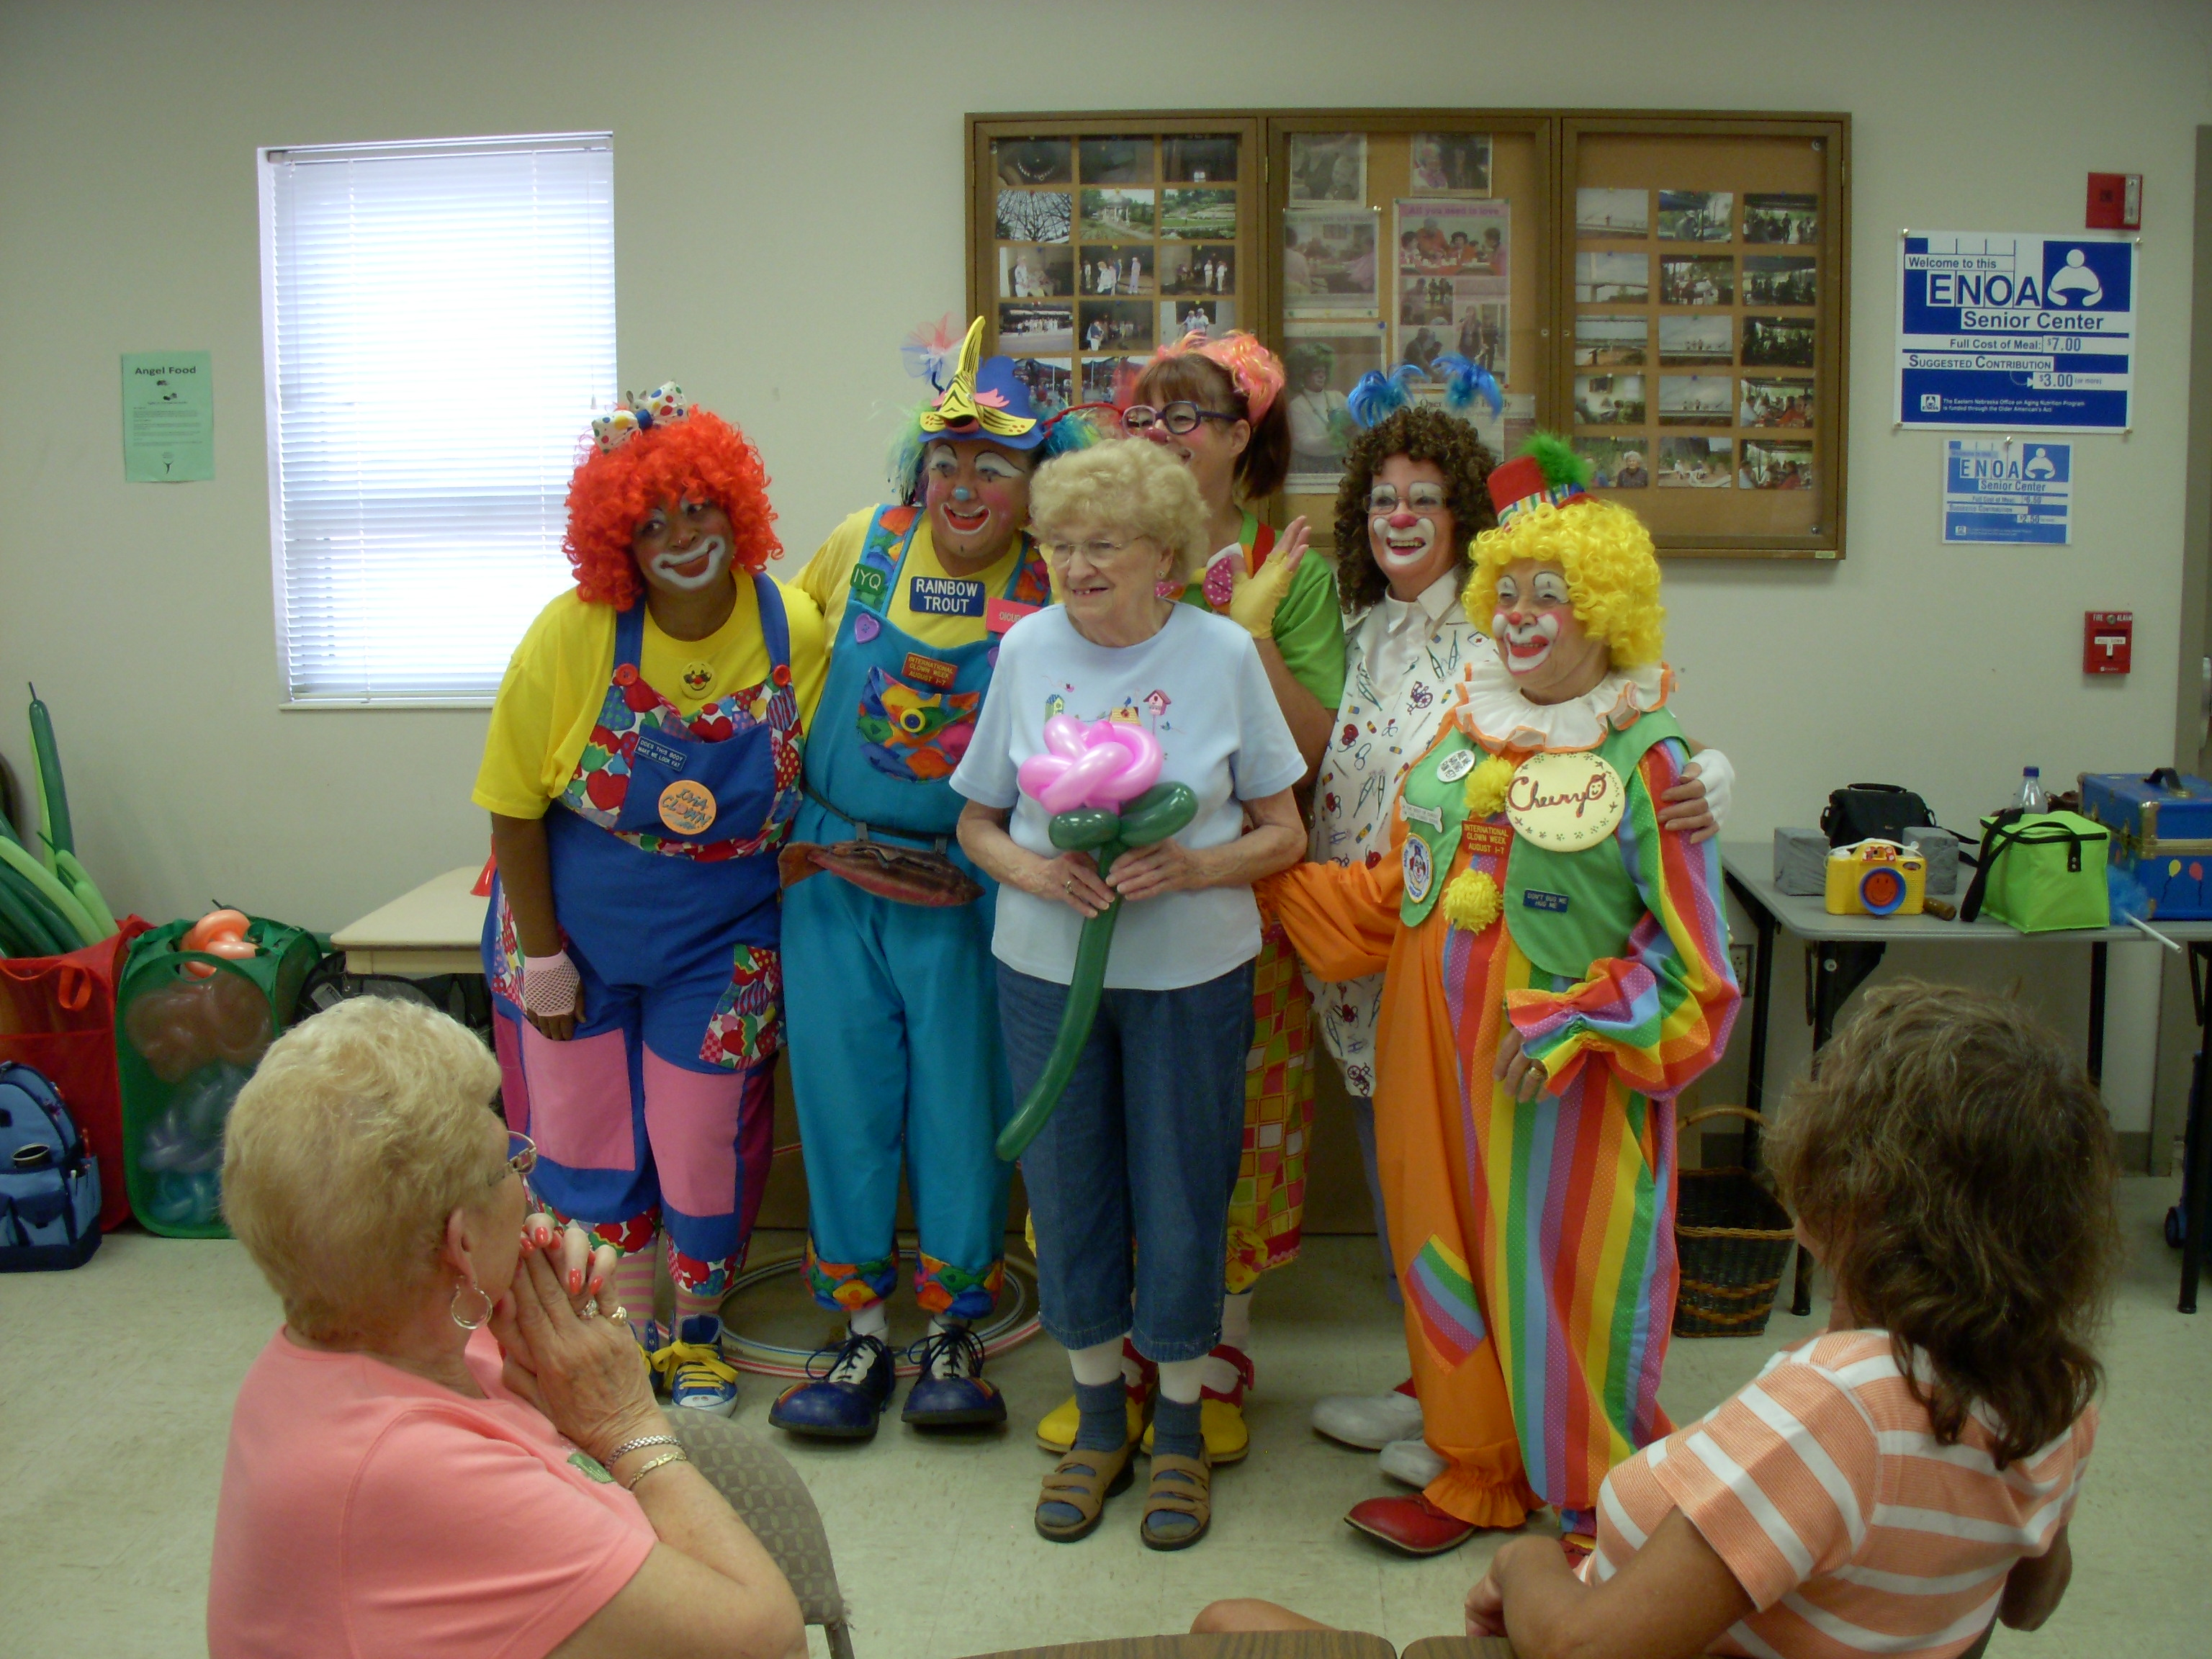 Photo of clowns and a lady